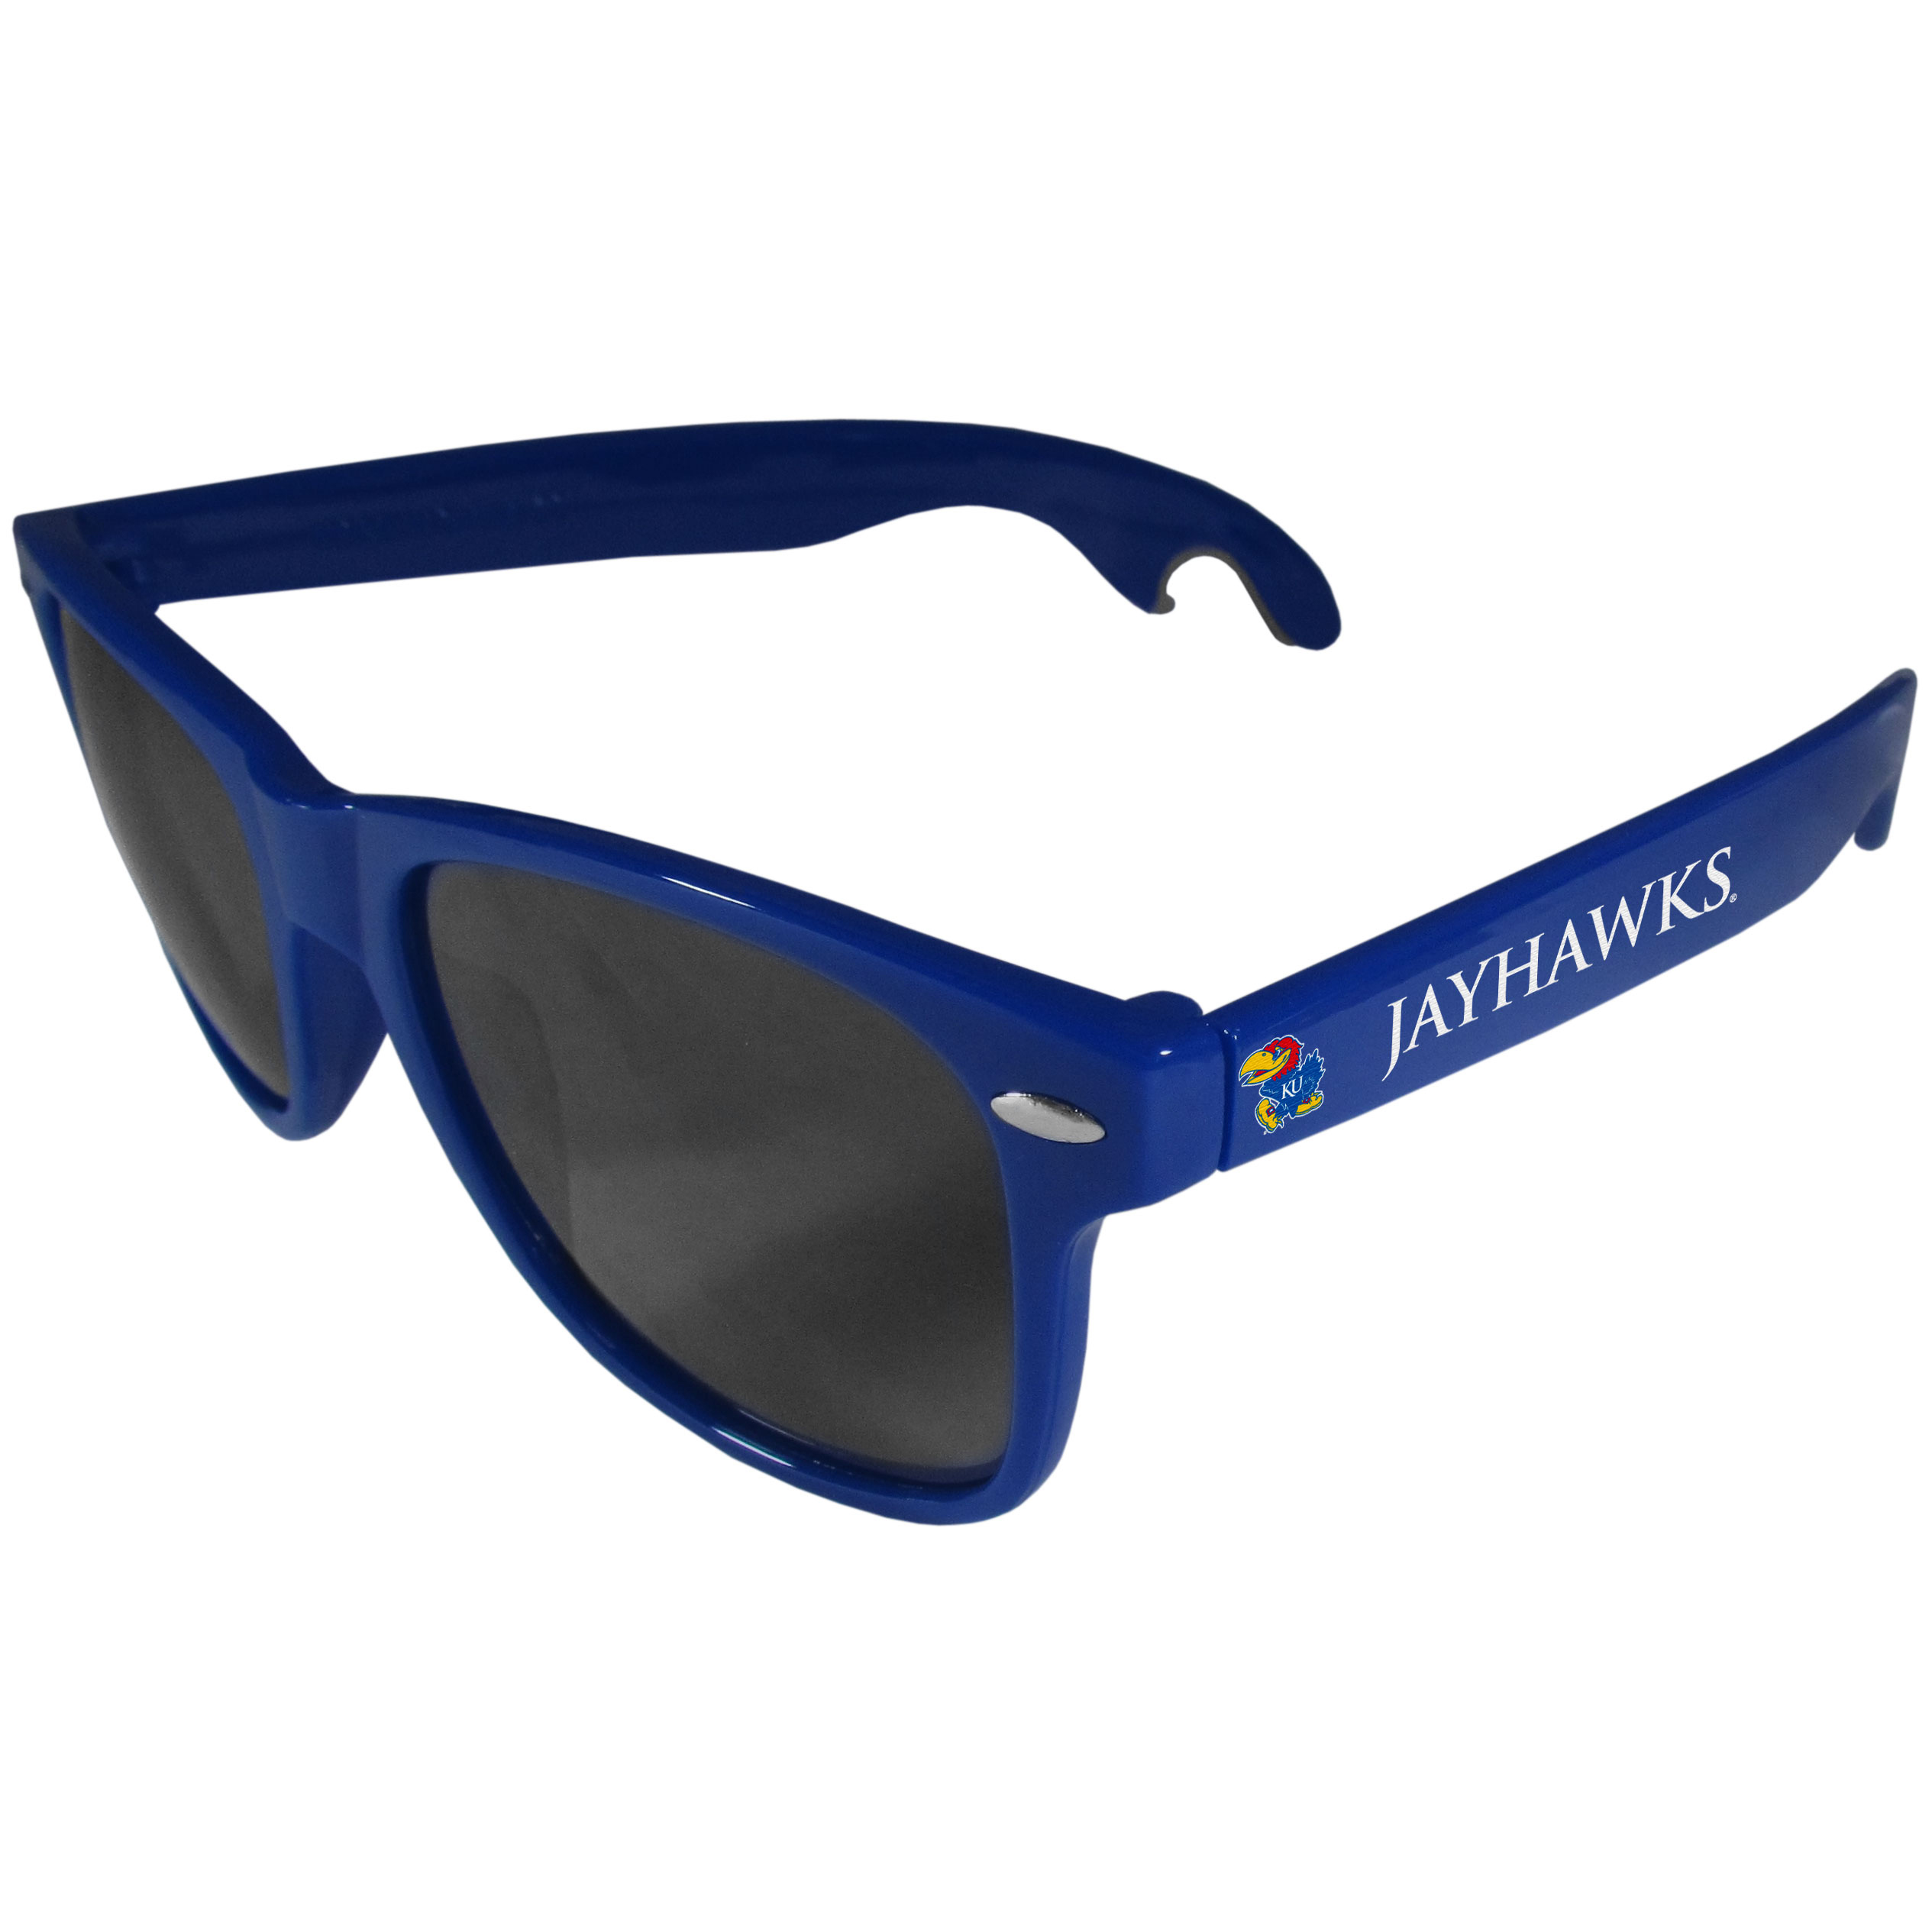 Kansas Jayhawks Beachfarer Bottle Opener Sunglasses, Blue - Seriously, these sunglasses open bottles! Keep the party going with these amazing Kansas Jayhawks bottle opener sunglasses. The stylish retro frames feature team designs on the arms and functional bottle openers on the end of the arms. Whether you are at the beach or having a backyard BBQ on game day, these shades will keep your eyes protected with 100% UVA/UVB protection and keep you hydrated with the handy bottle opener arms.